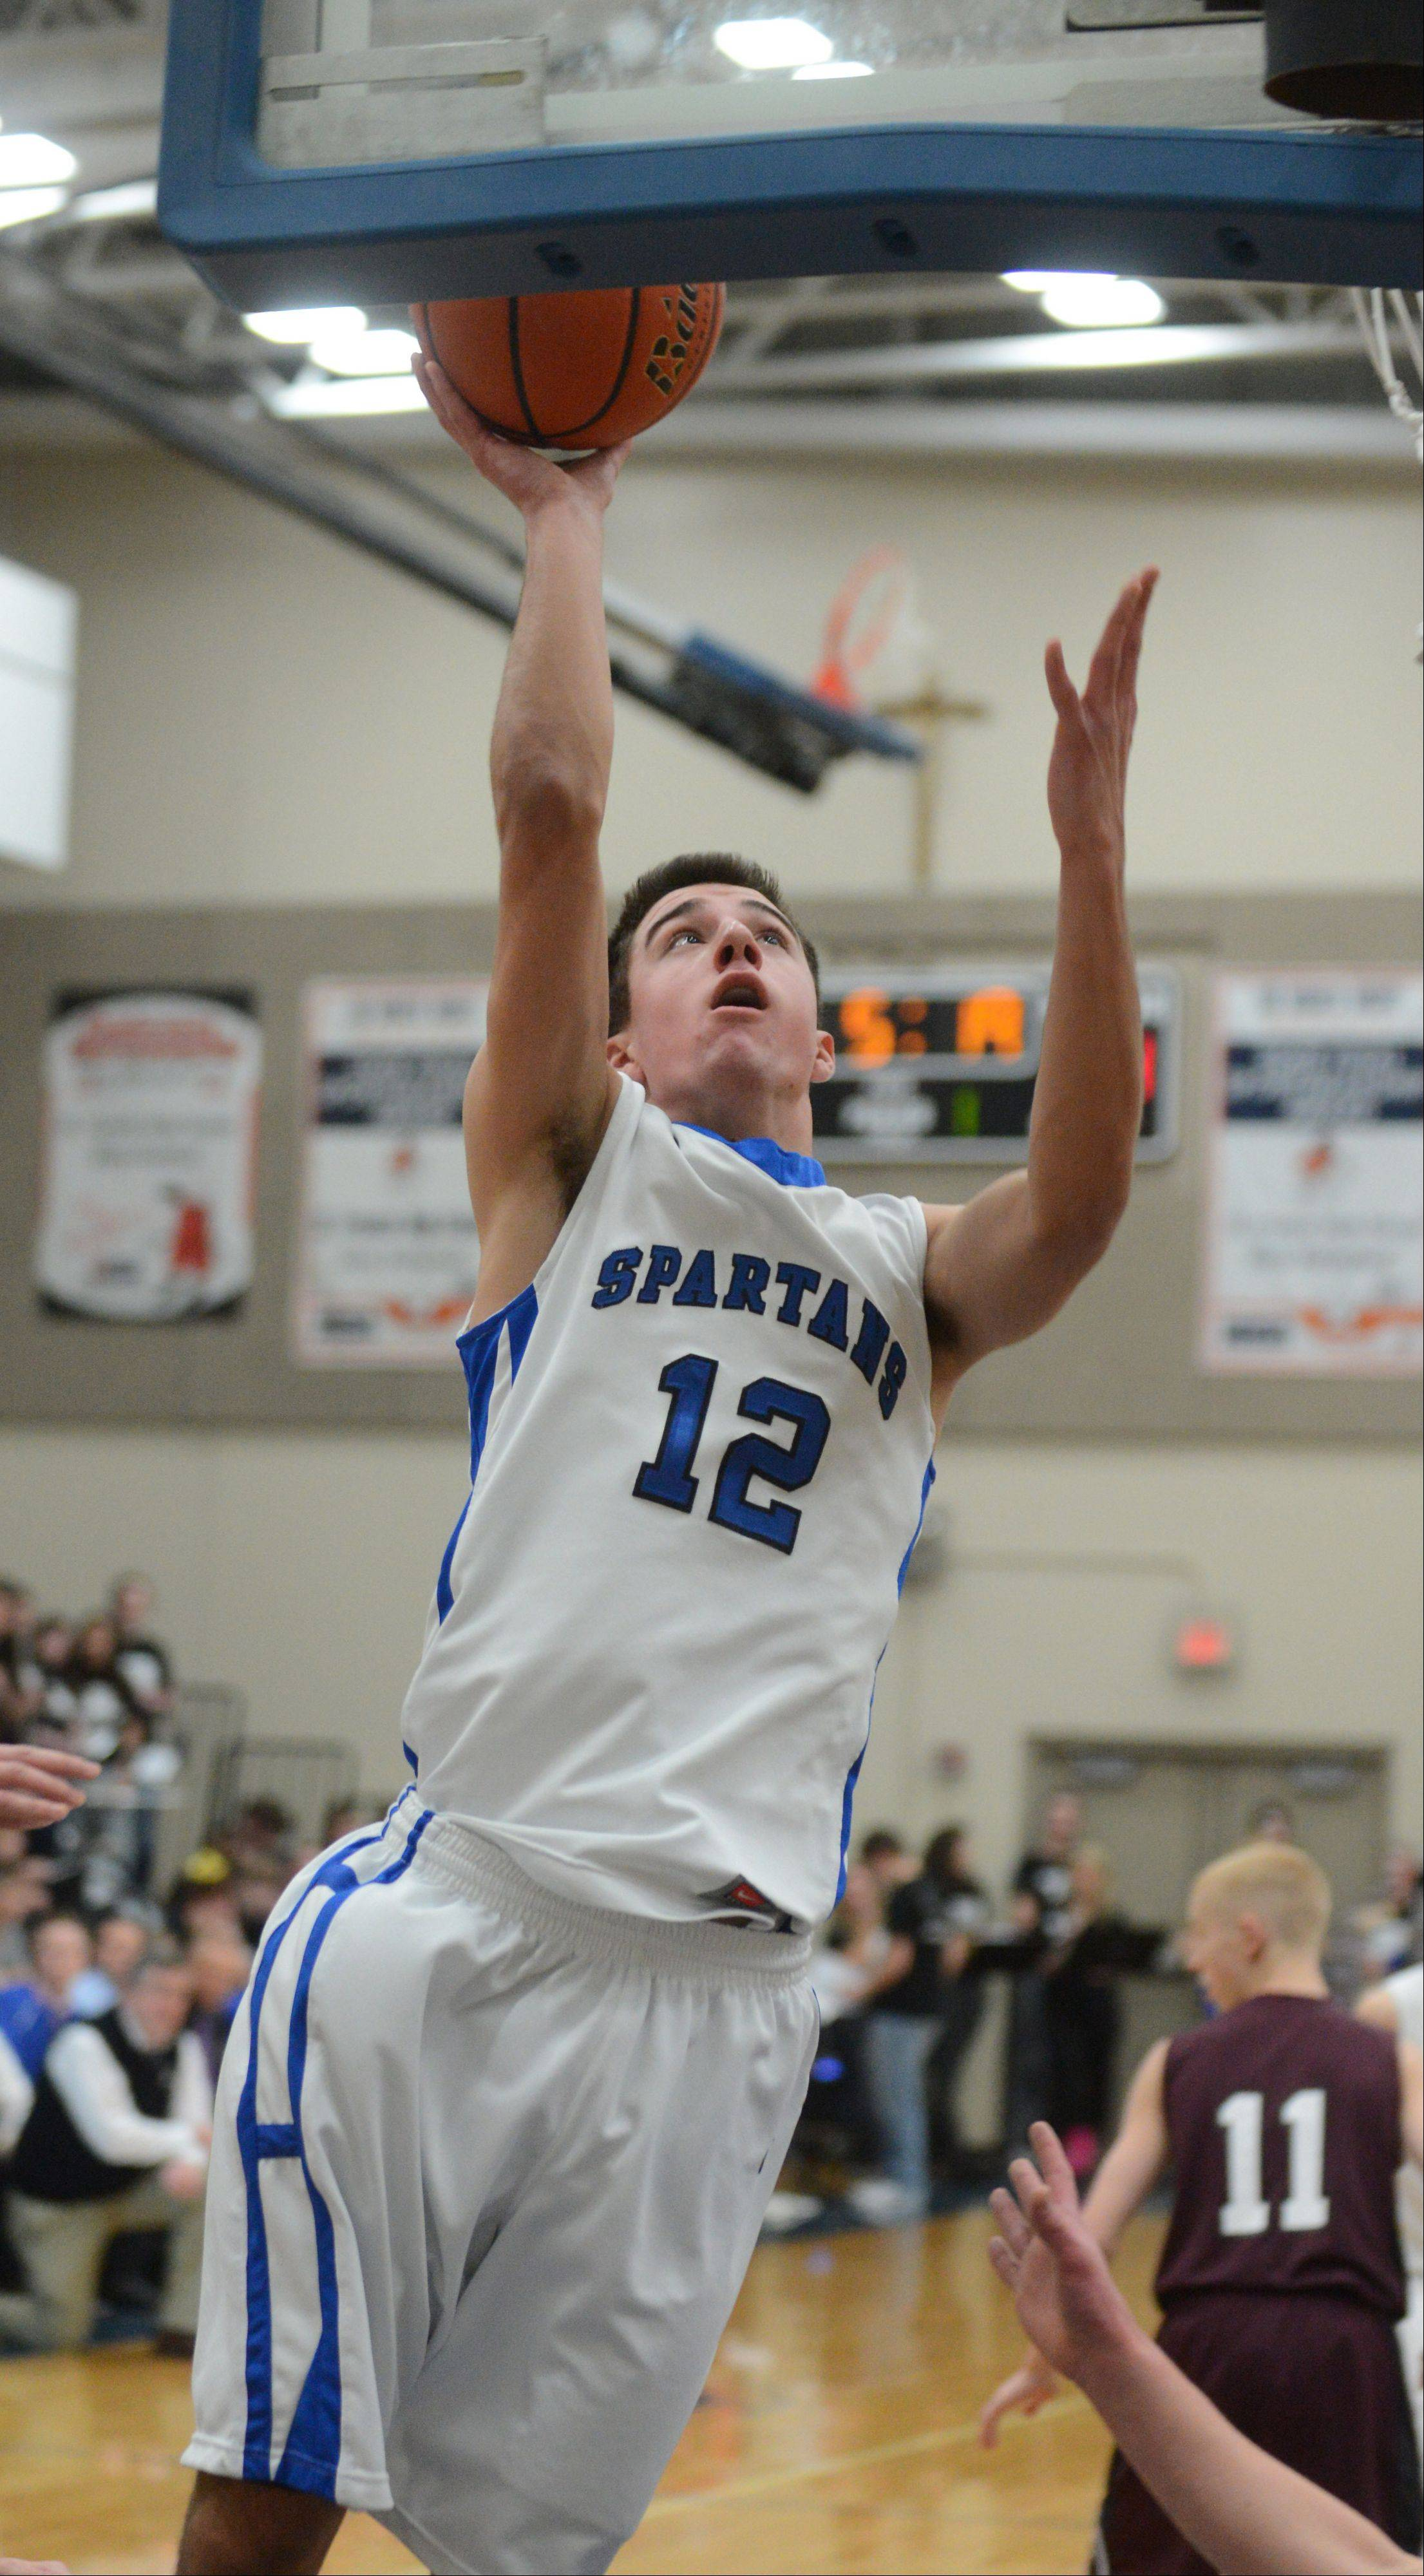 Tim Zettinger of St. Francis brings one to the net during the Wheaton Academy at St. Francis boys basketball game Friday.